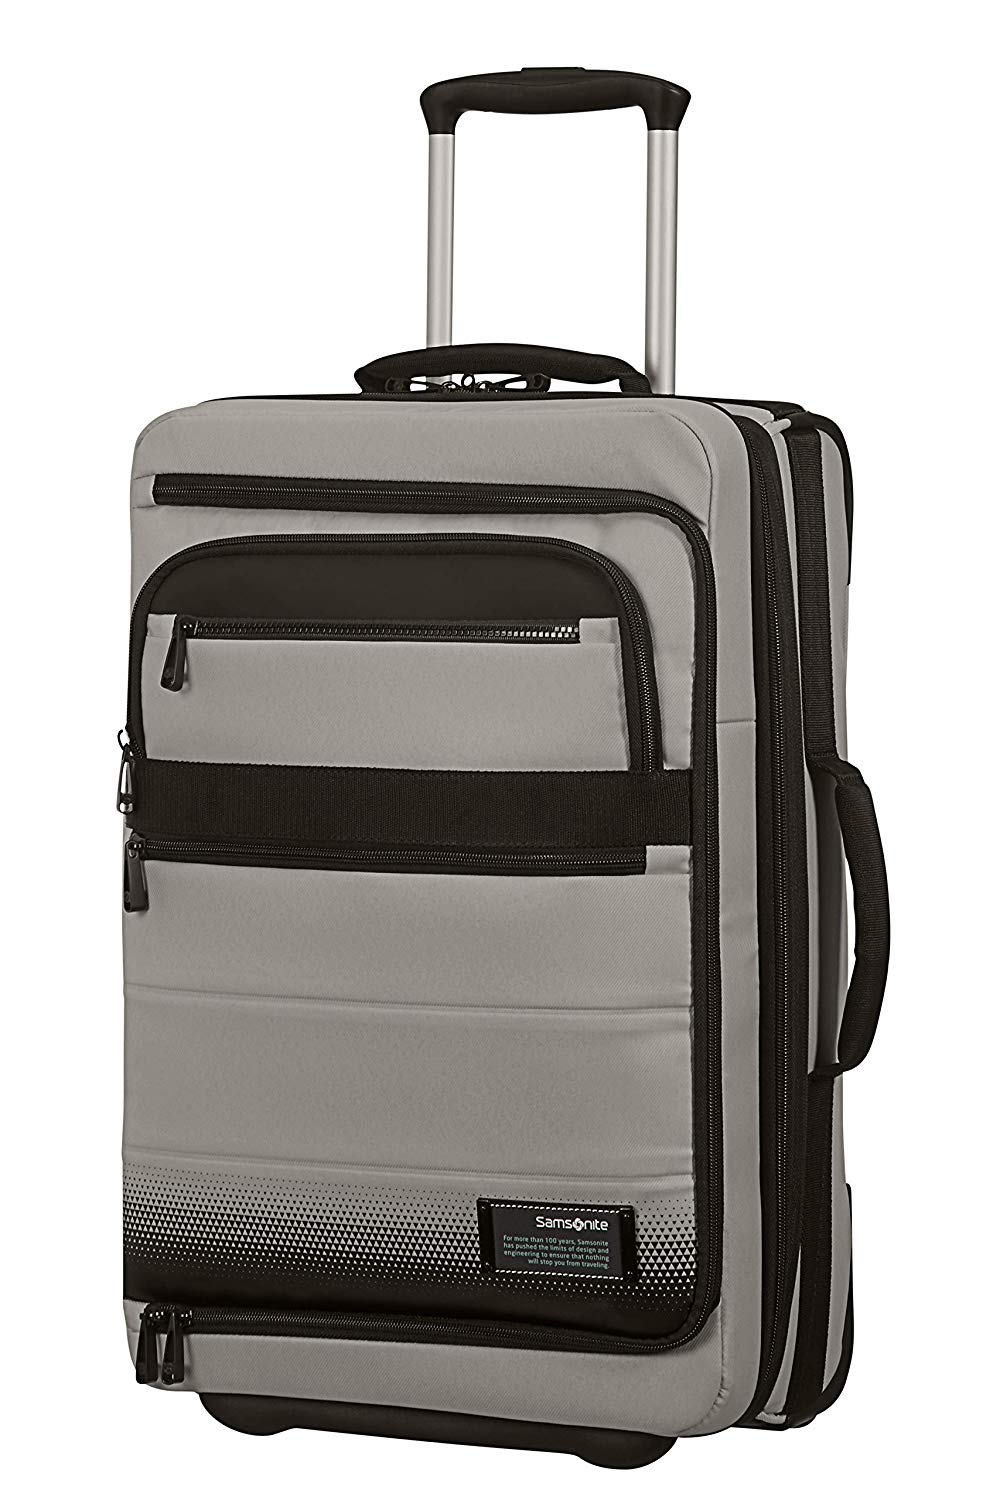 SAMSONITE Cityvibe 2.0 - Mobile Office Koffer, 55 cm, 41.5 Liter, Ash Grey